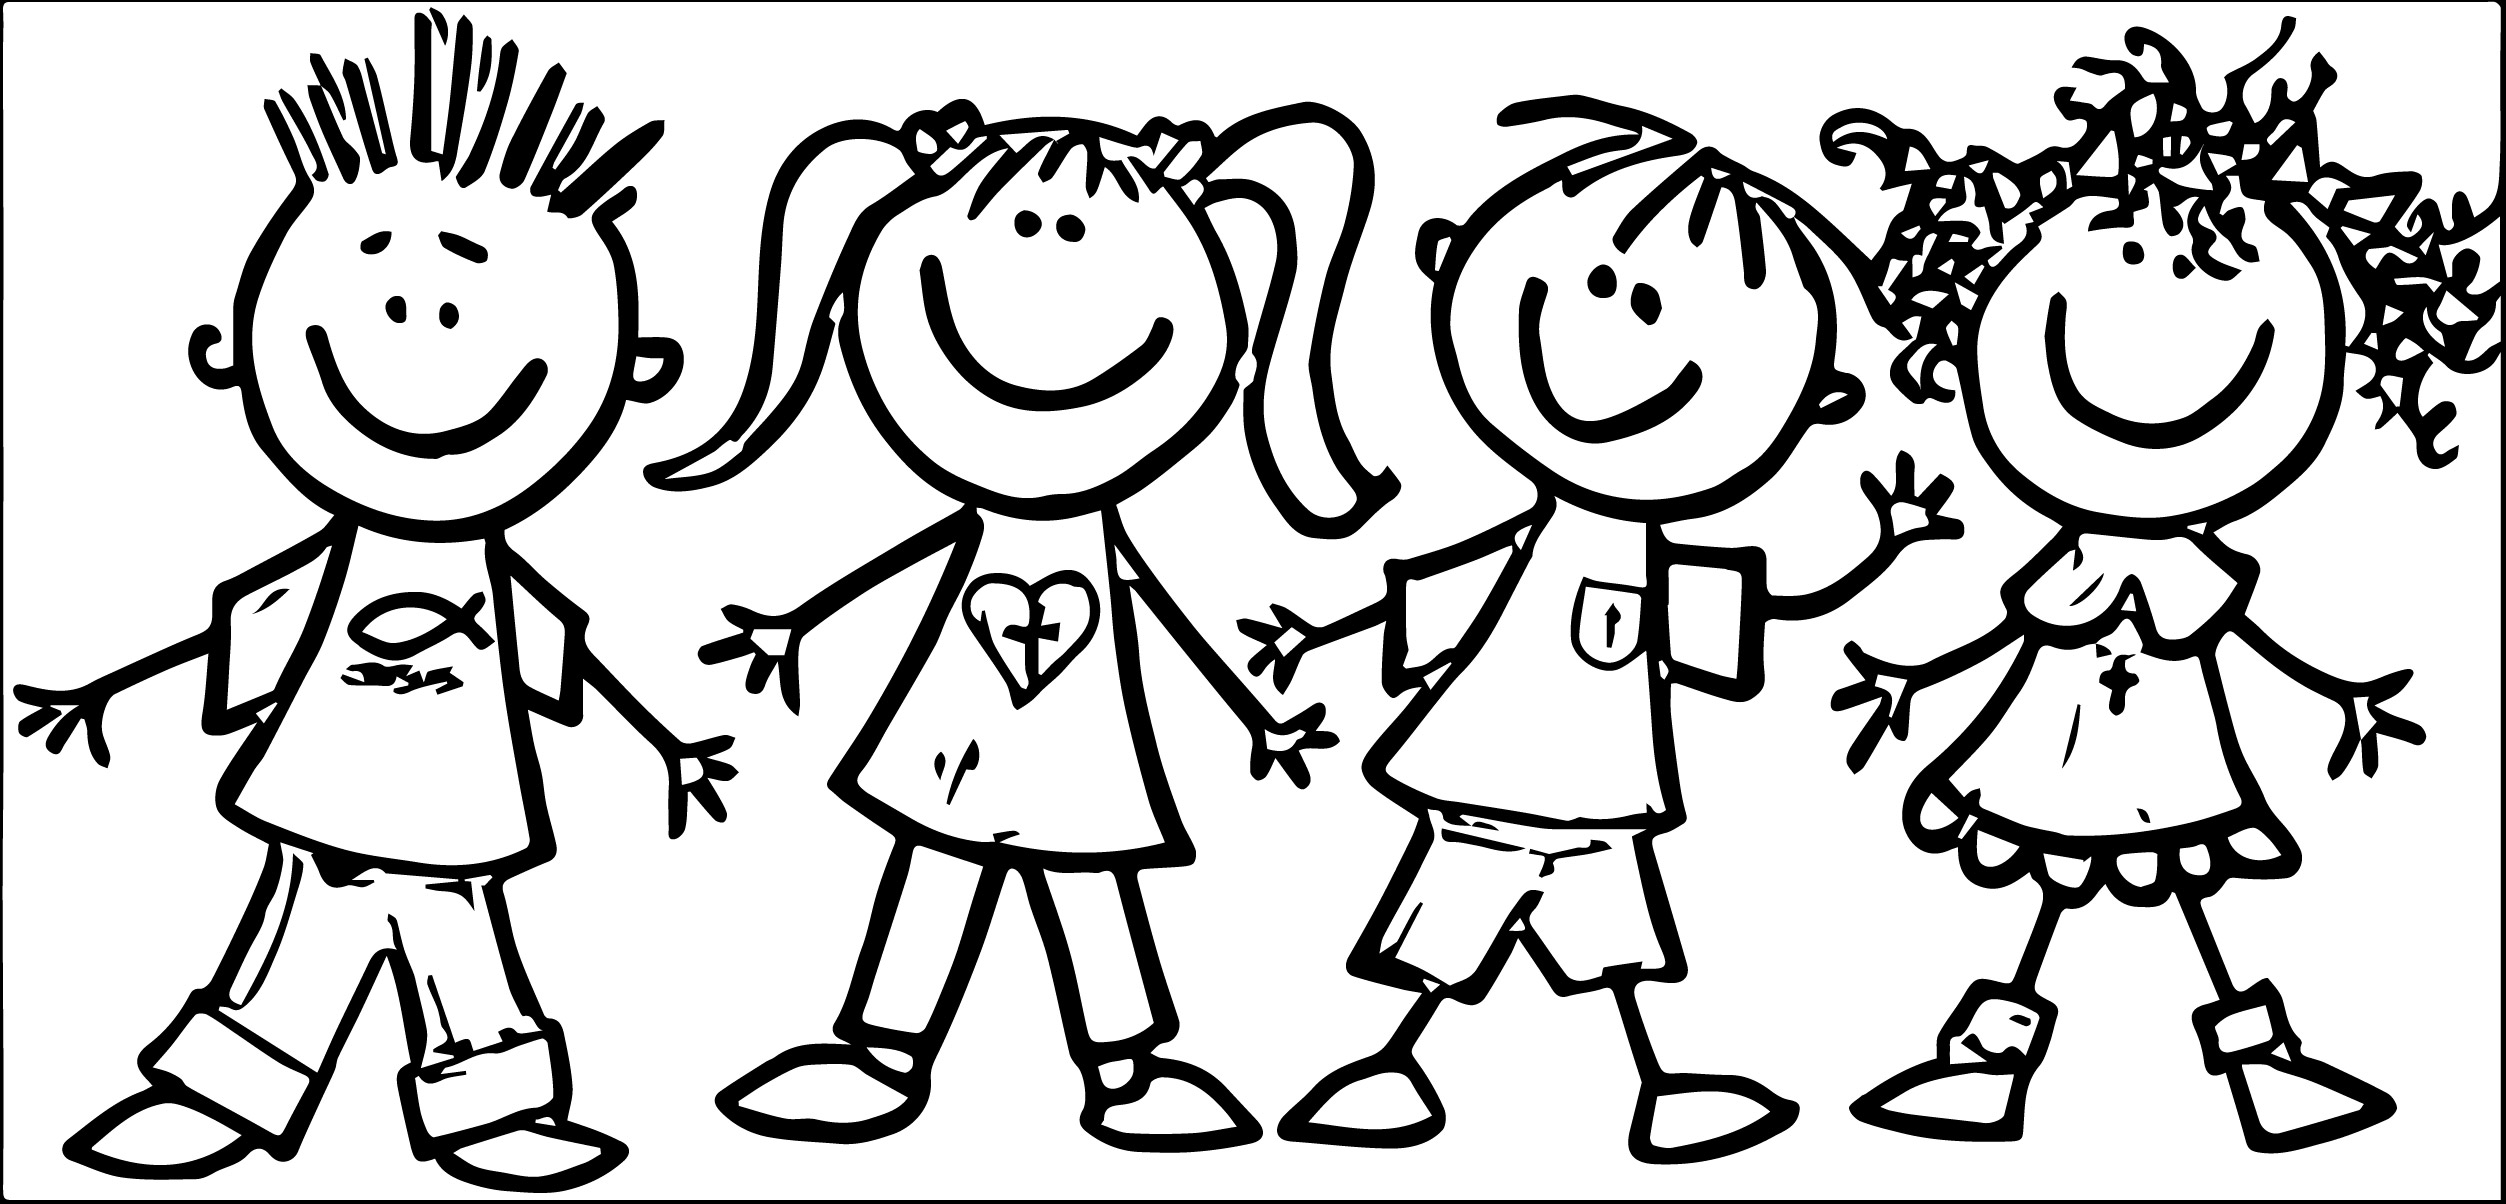 coloring picture kindergarten 9 kindergarten coloring pages free psd vector jpeg picture coloring kindergarten